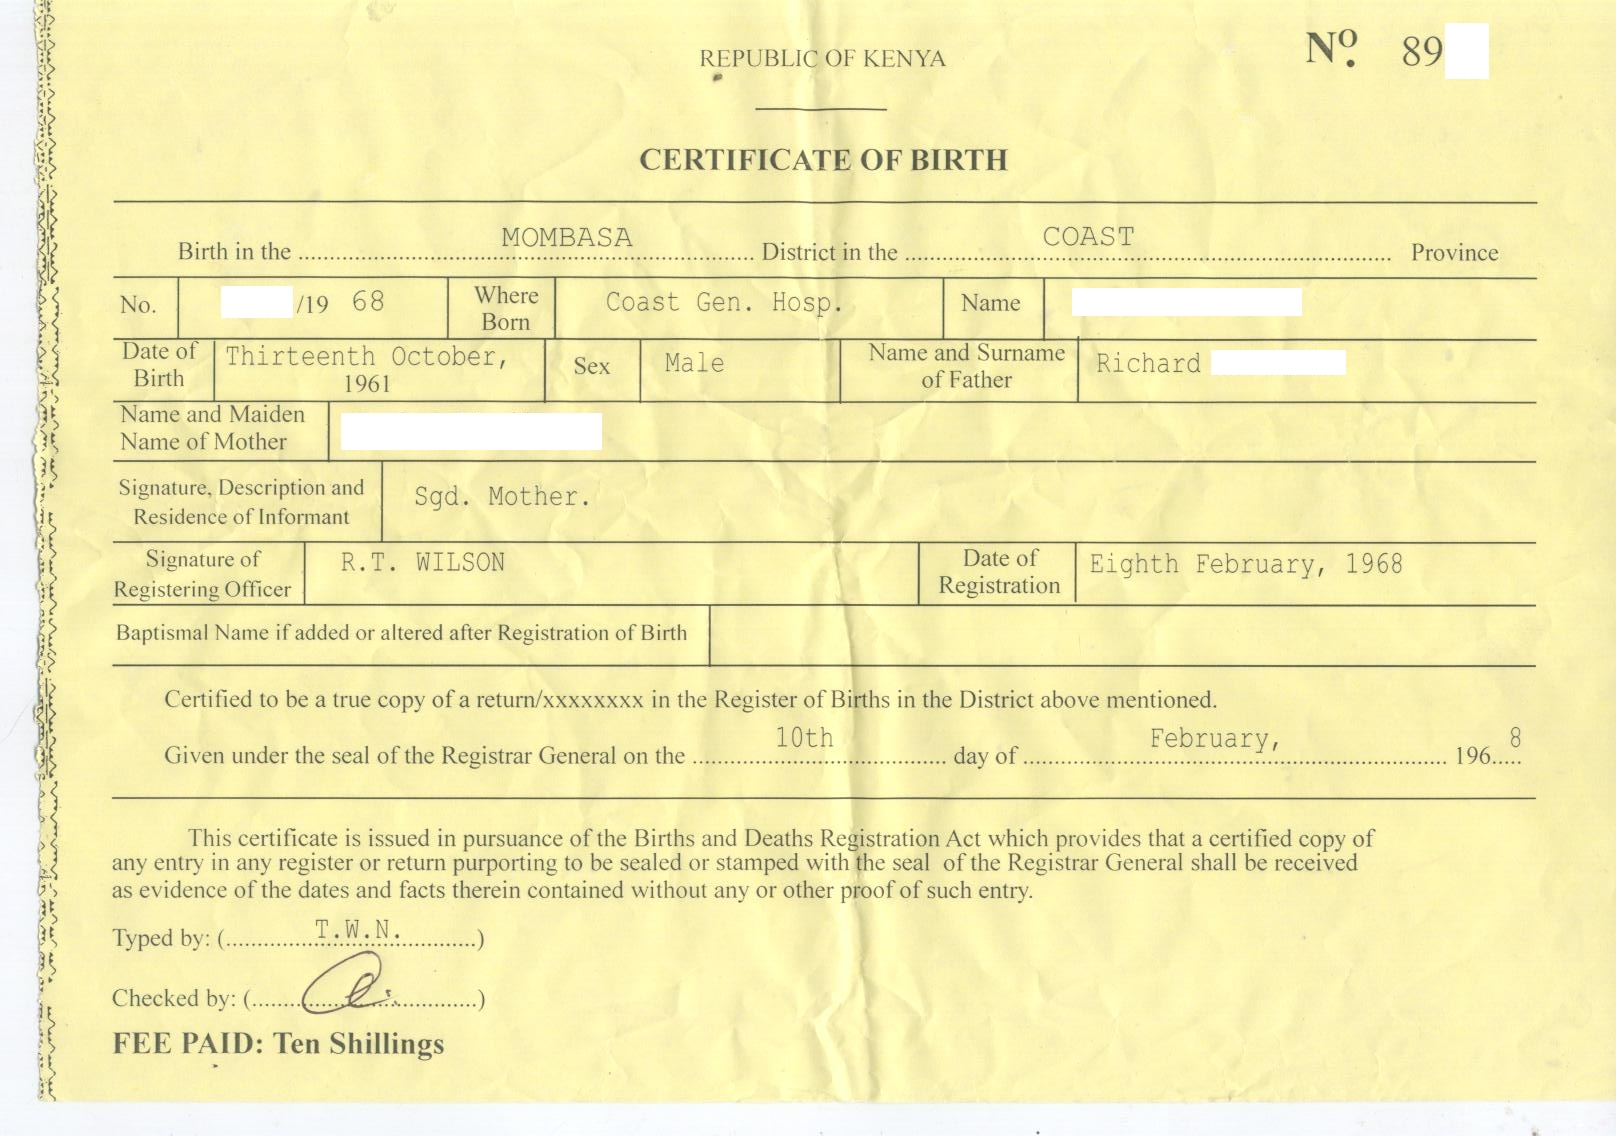 novelty birth certificate template - dr conspiracy s first fake kenyan birth certificate